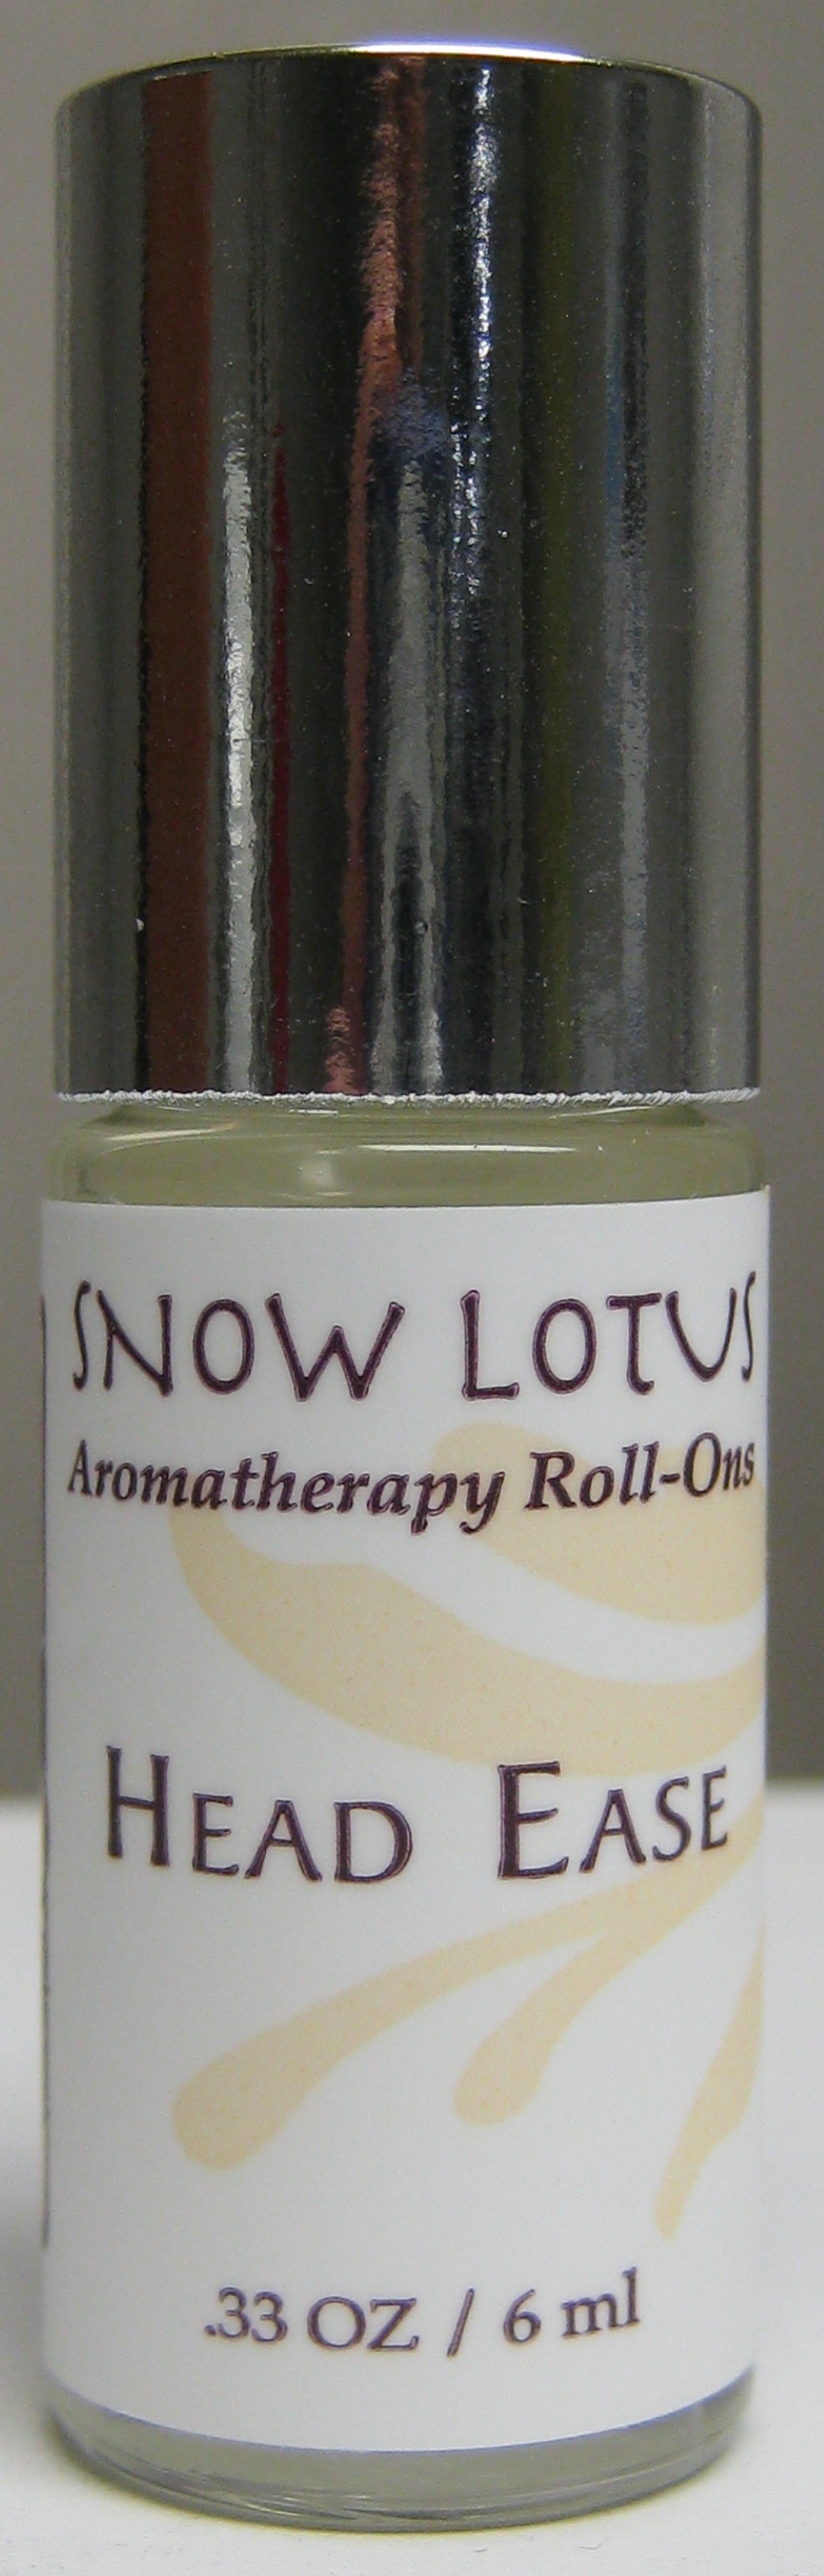 Head Ease Aromatherapy Roll-On